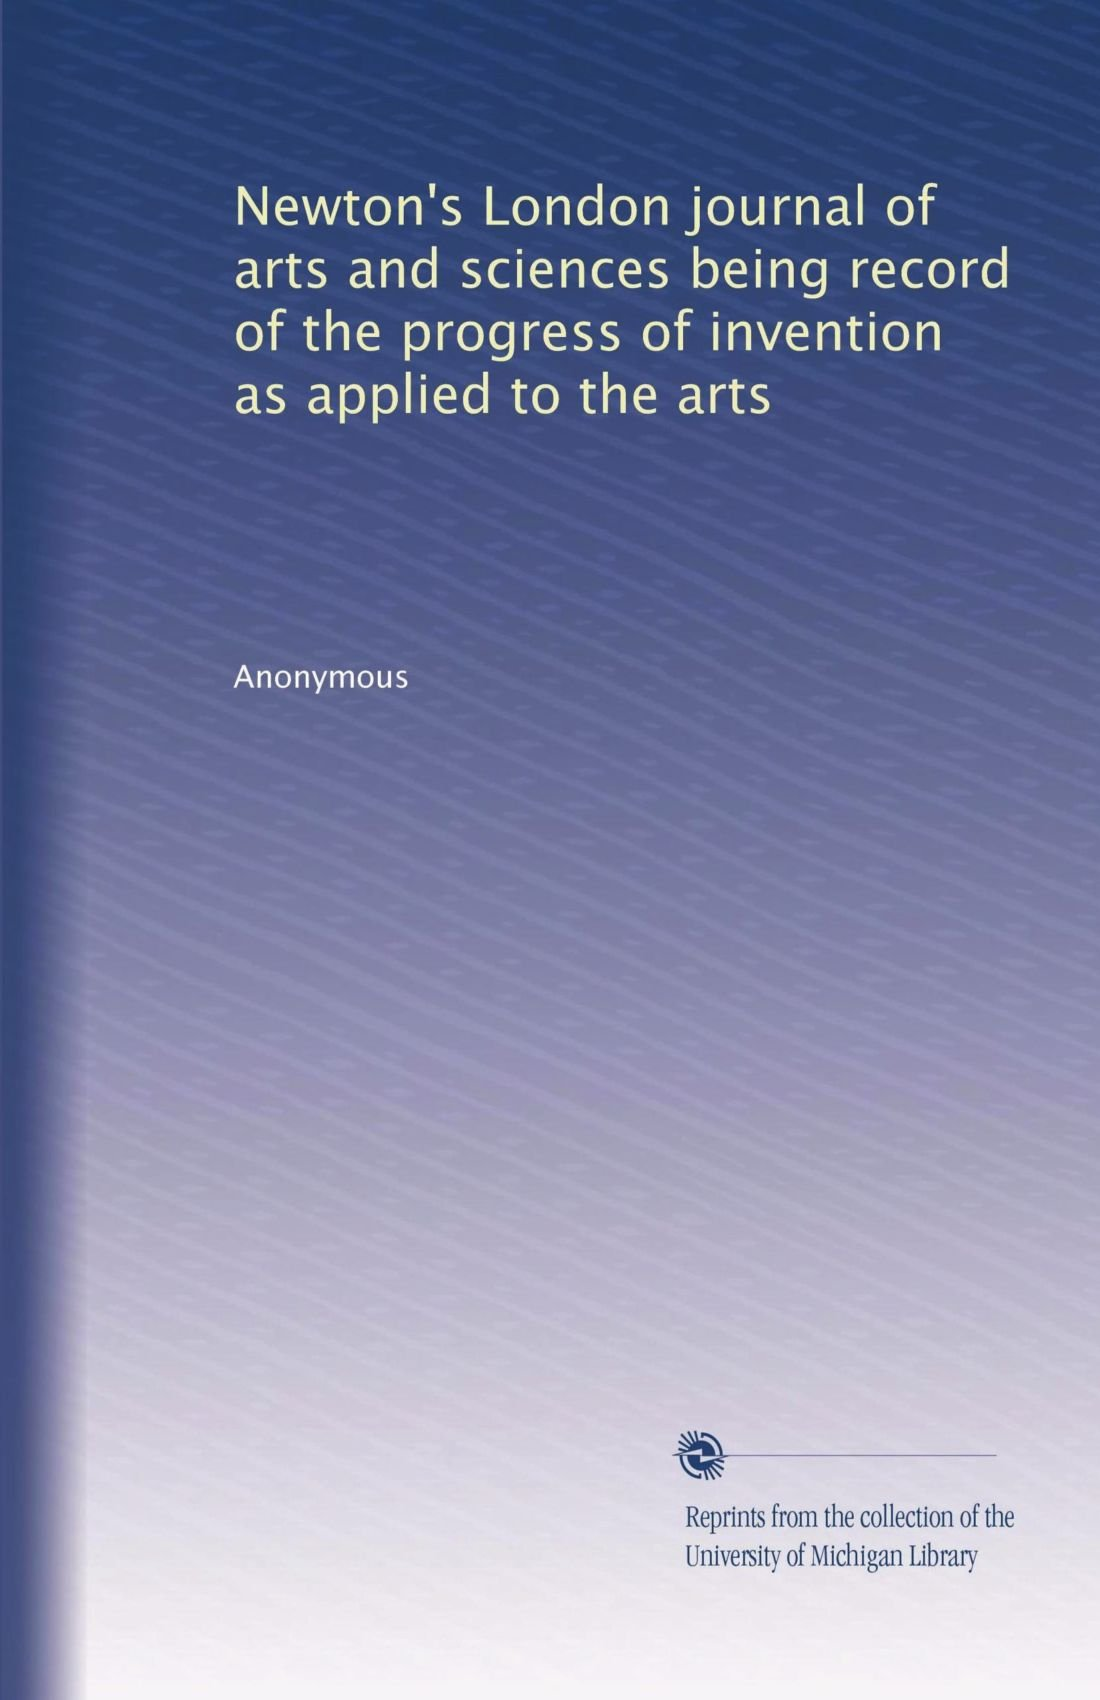 Download Newton's London journal of arts and sciences being record of the progress of invention as applied to the arts (Volume 65) pdf epub